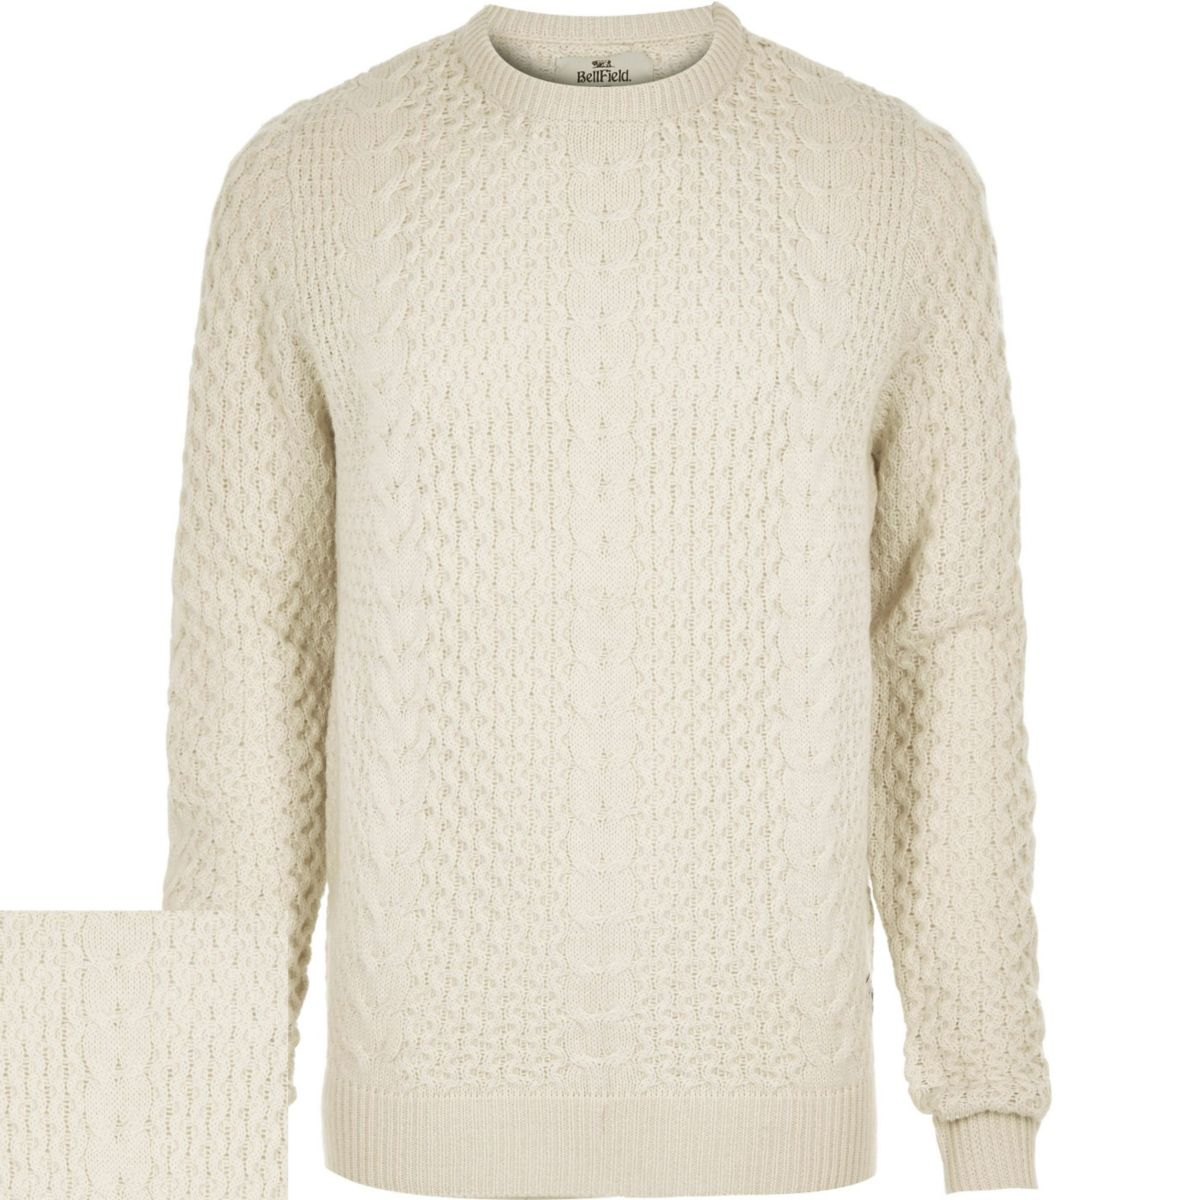 Cream Bellfield cable knit jumper